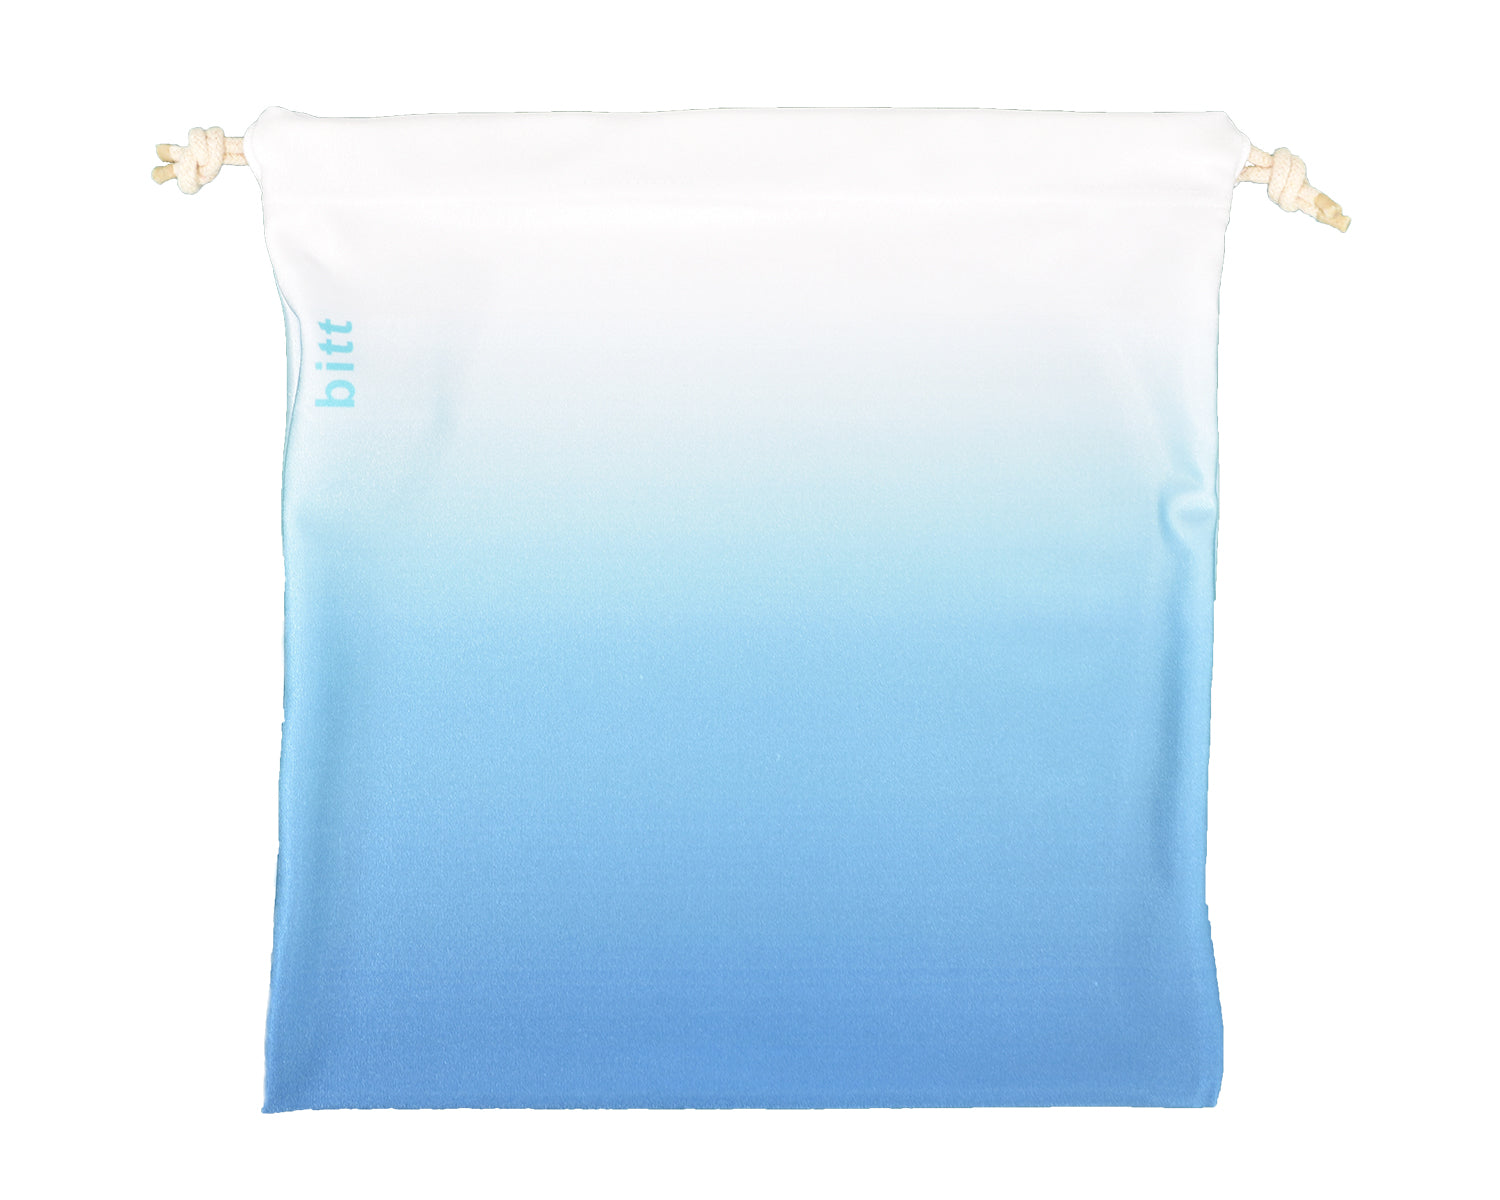 Turquoise White Ombre Gymnastics Grip Bag